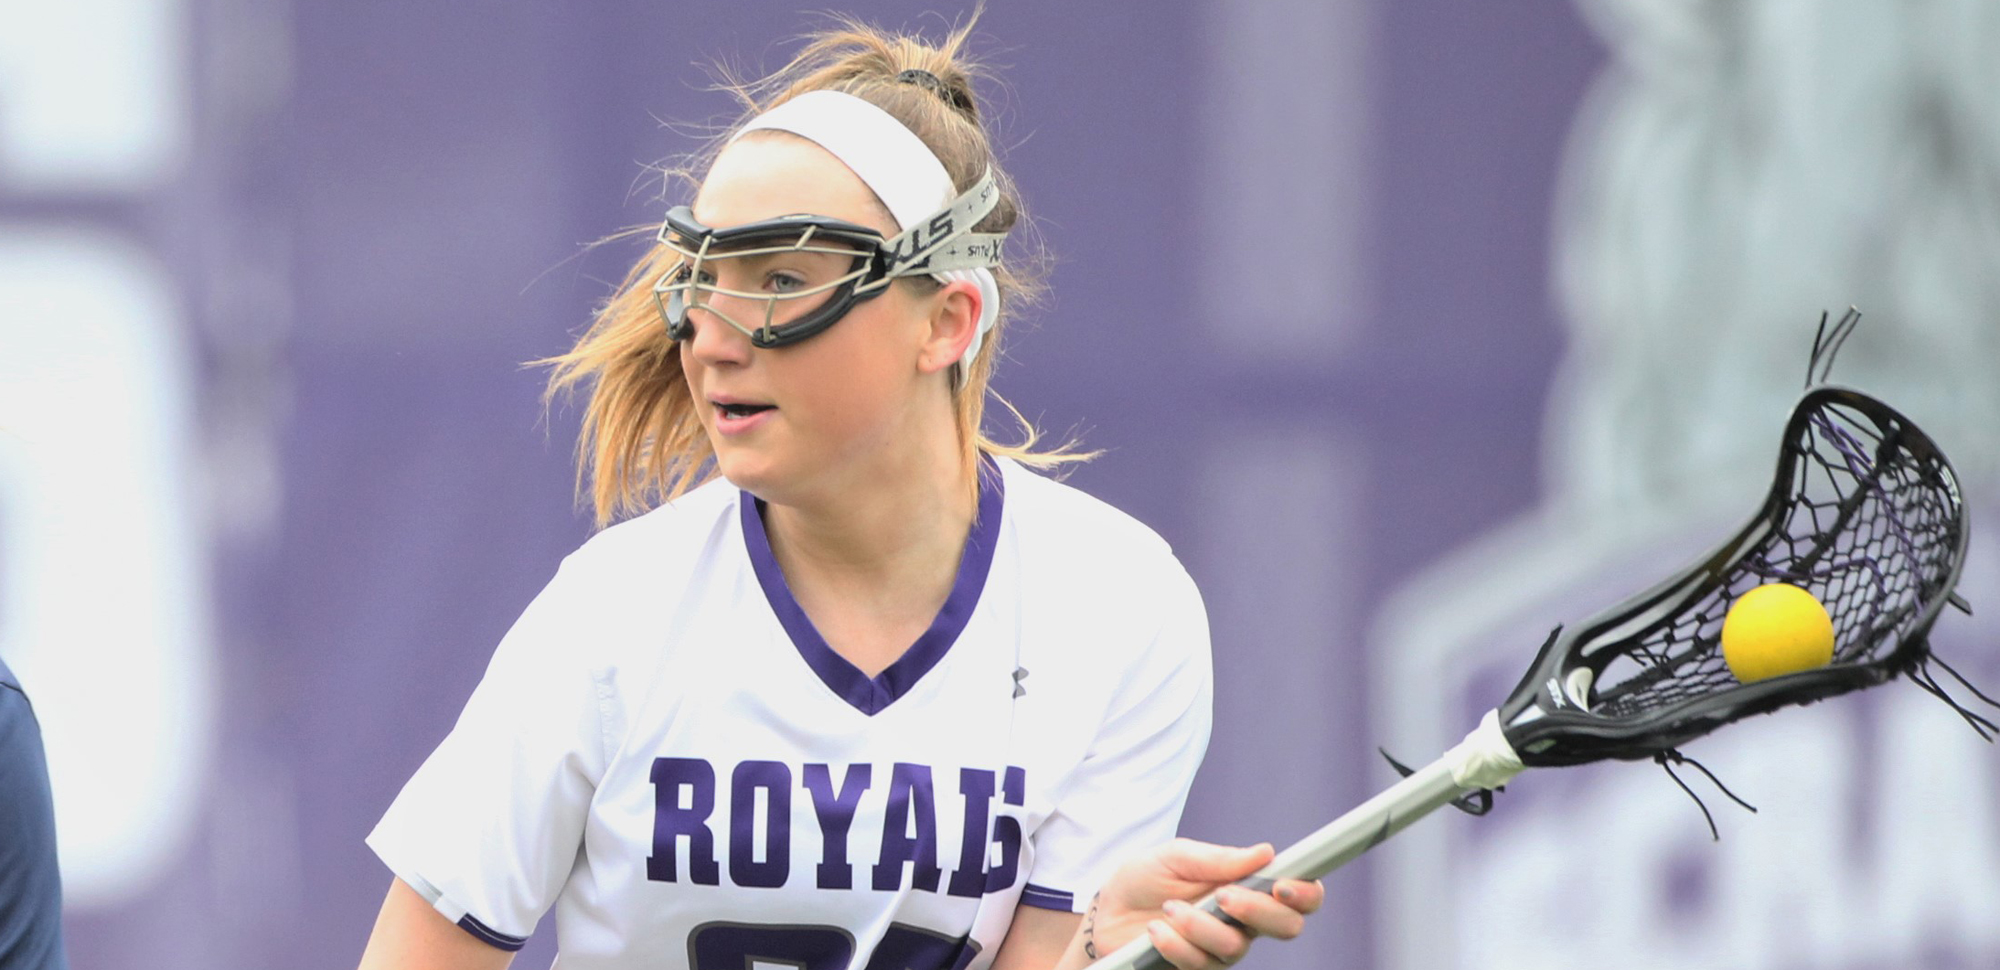 Junior Jill Henson matched her career-high with six goals in a 14-7 win over Misericordia on Wednesday and has been named Scranton Athlete of the Week for her performance. © Photo by Timothy R. Dougherty / doubleeaglephotography.com